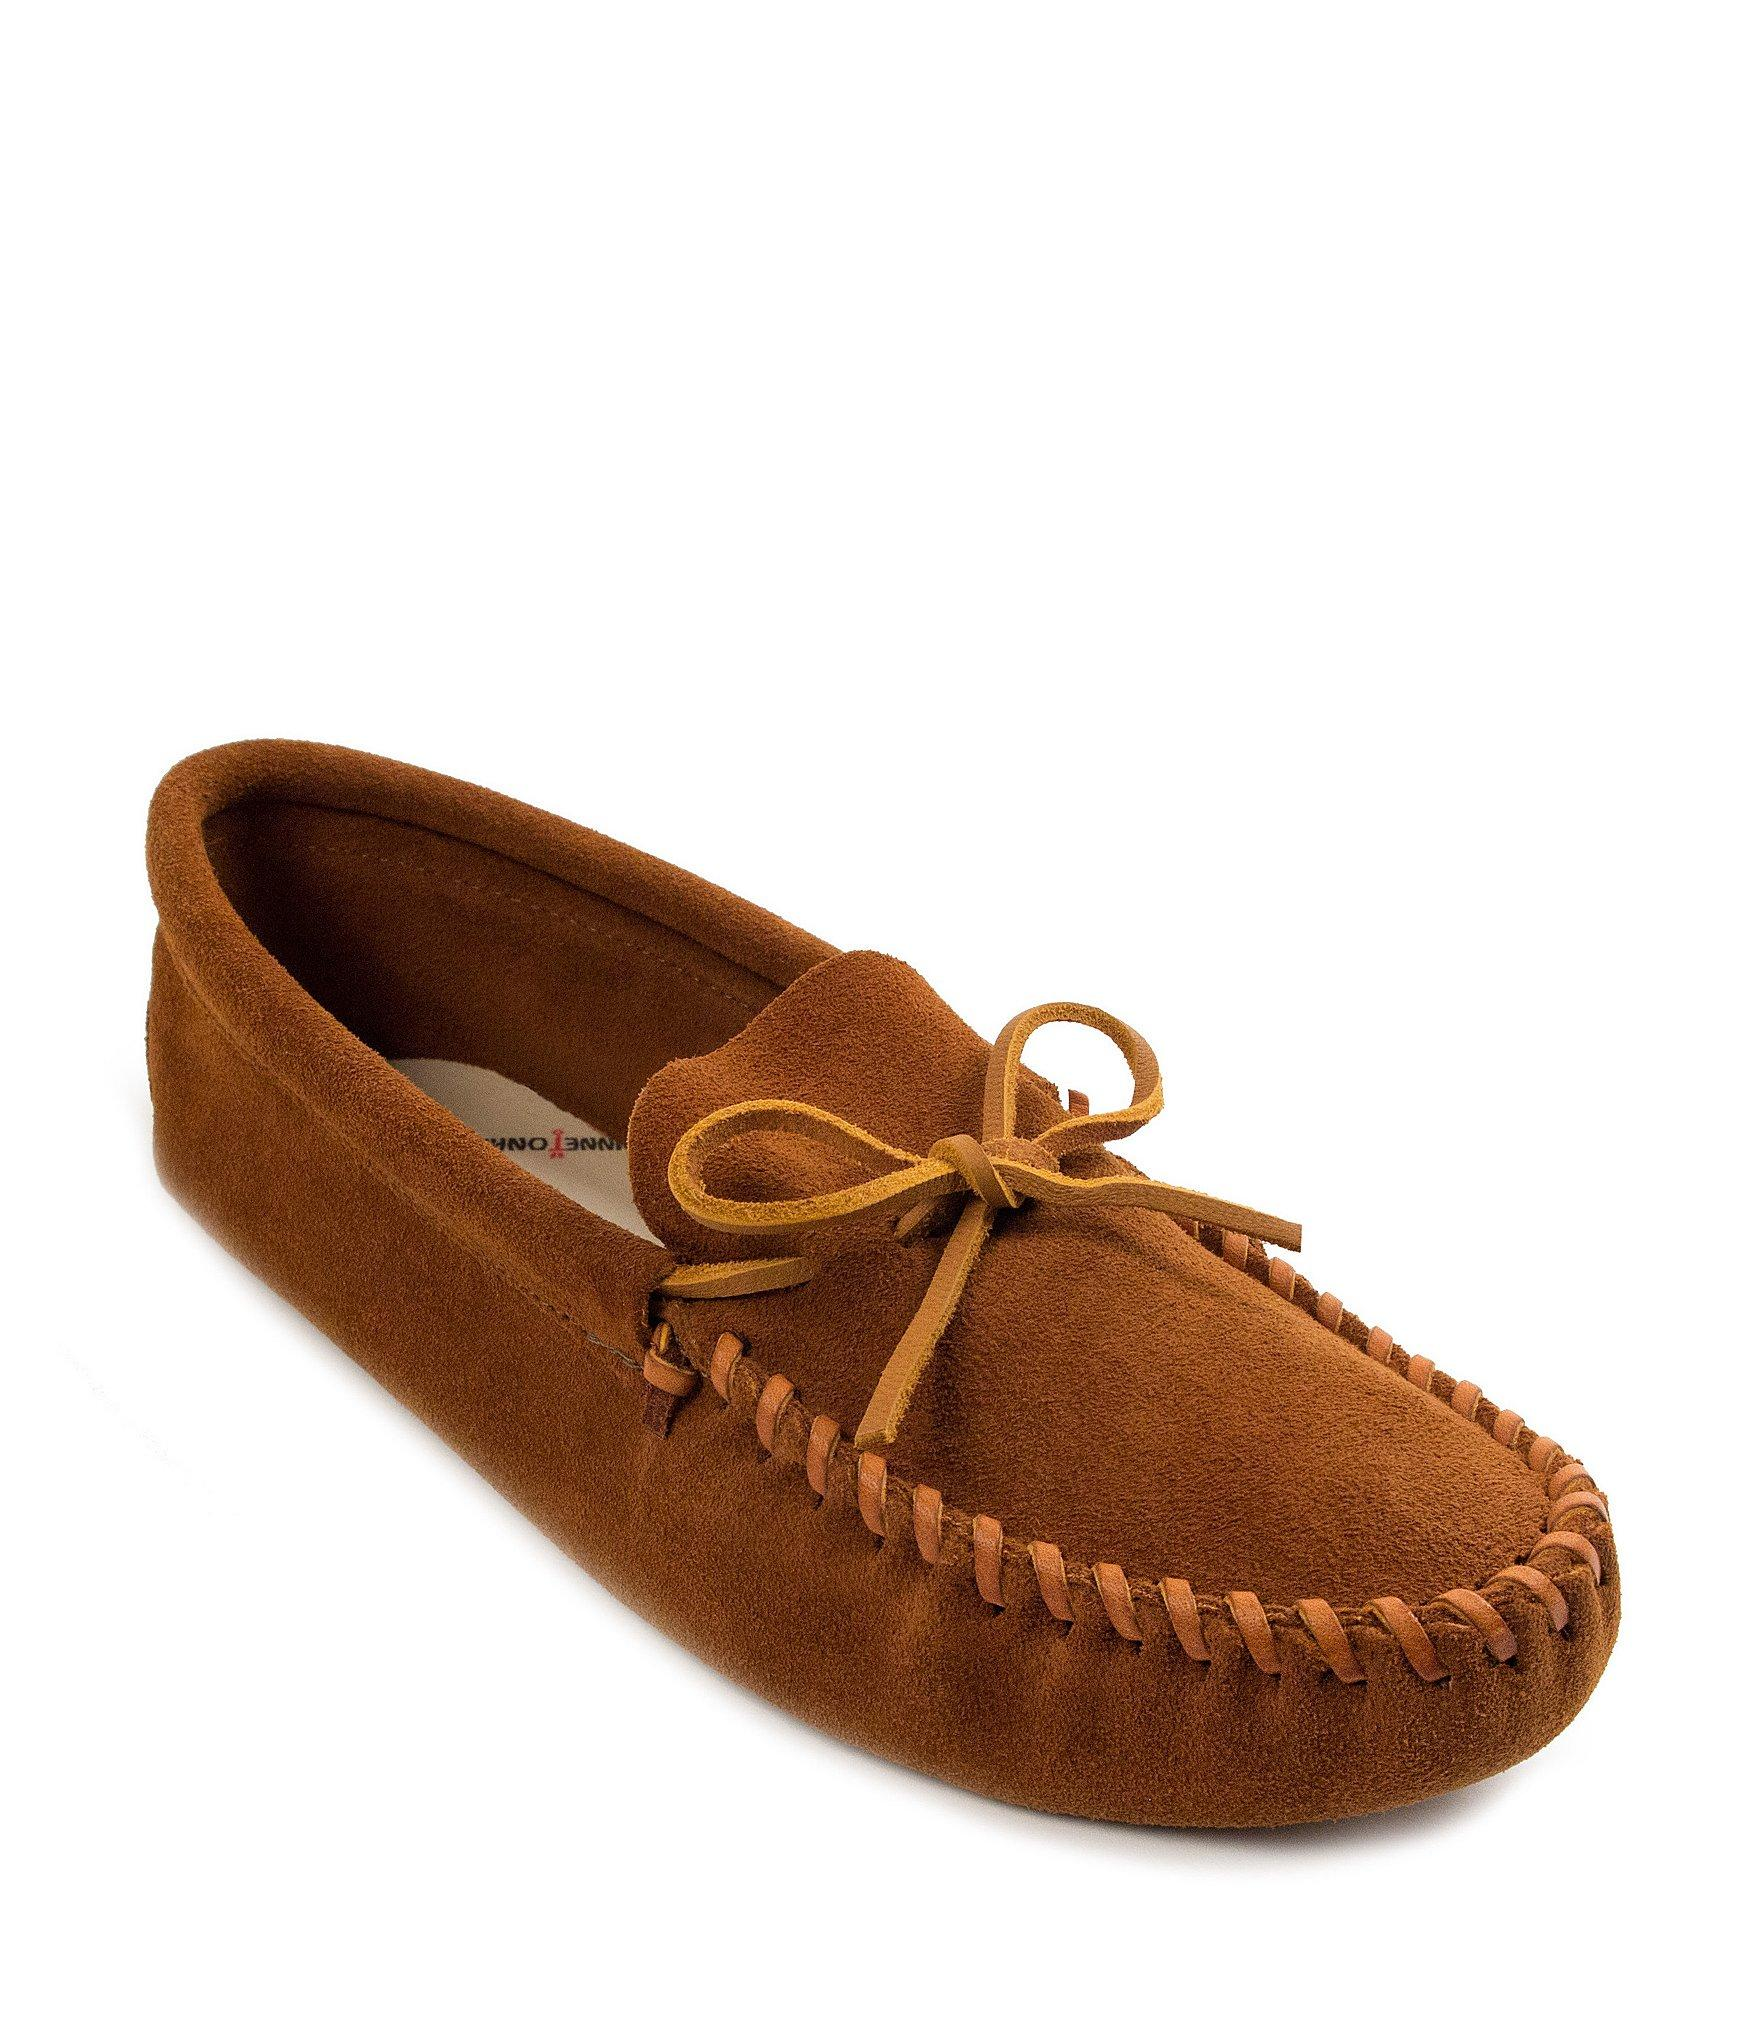 2d9654b91 Lyst - Minnetonka Men s Leather Laced Softsole Slipper in Brown for Men